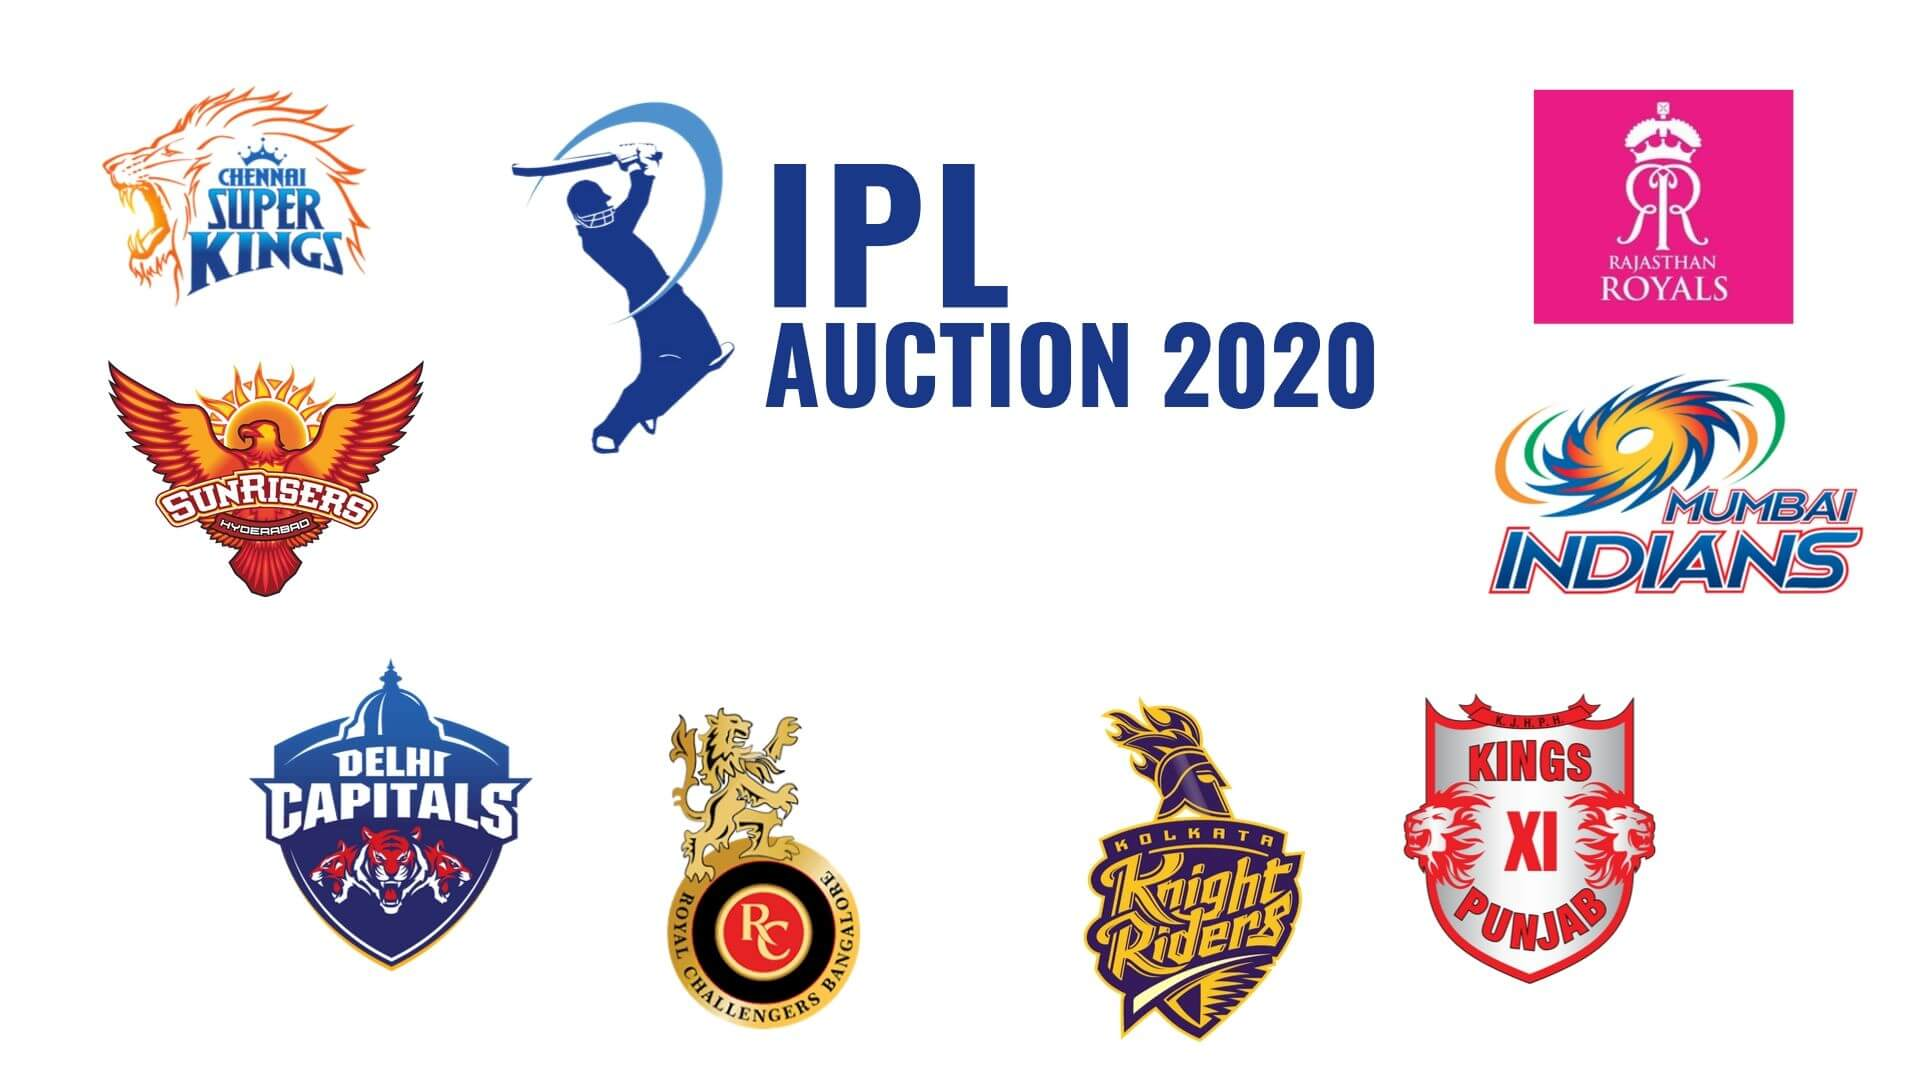 IPL 2020 Auction to be held in Kolkata on 19th December